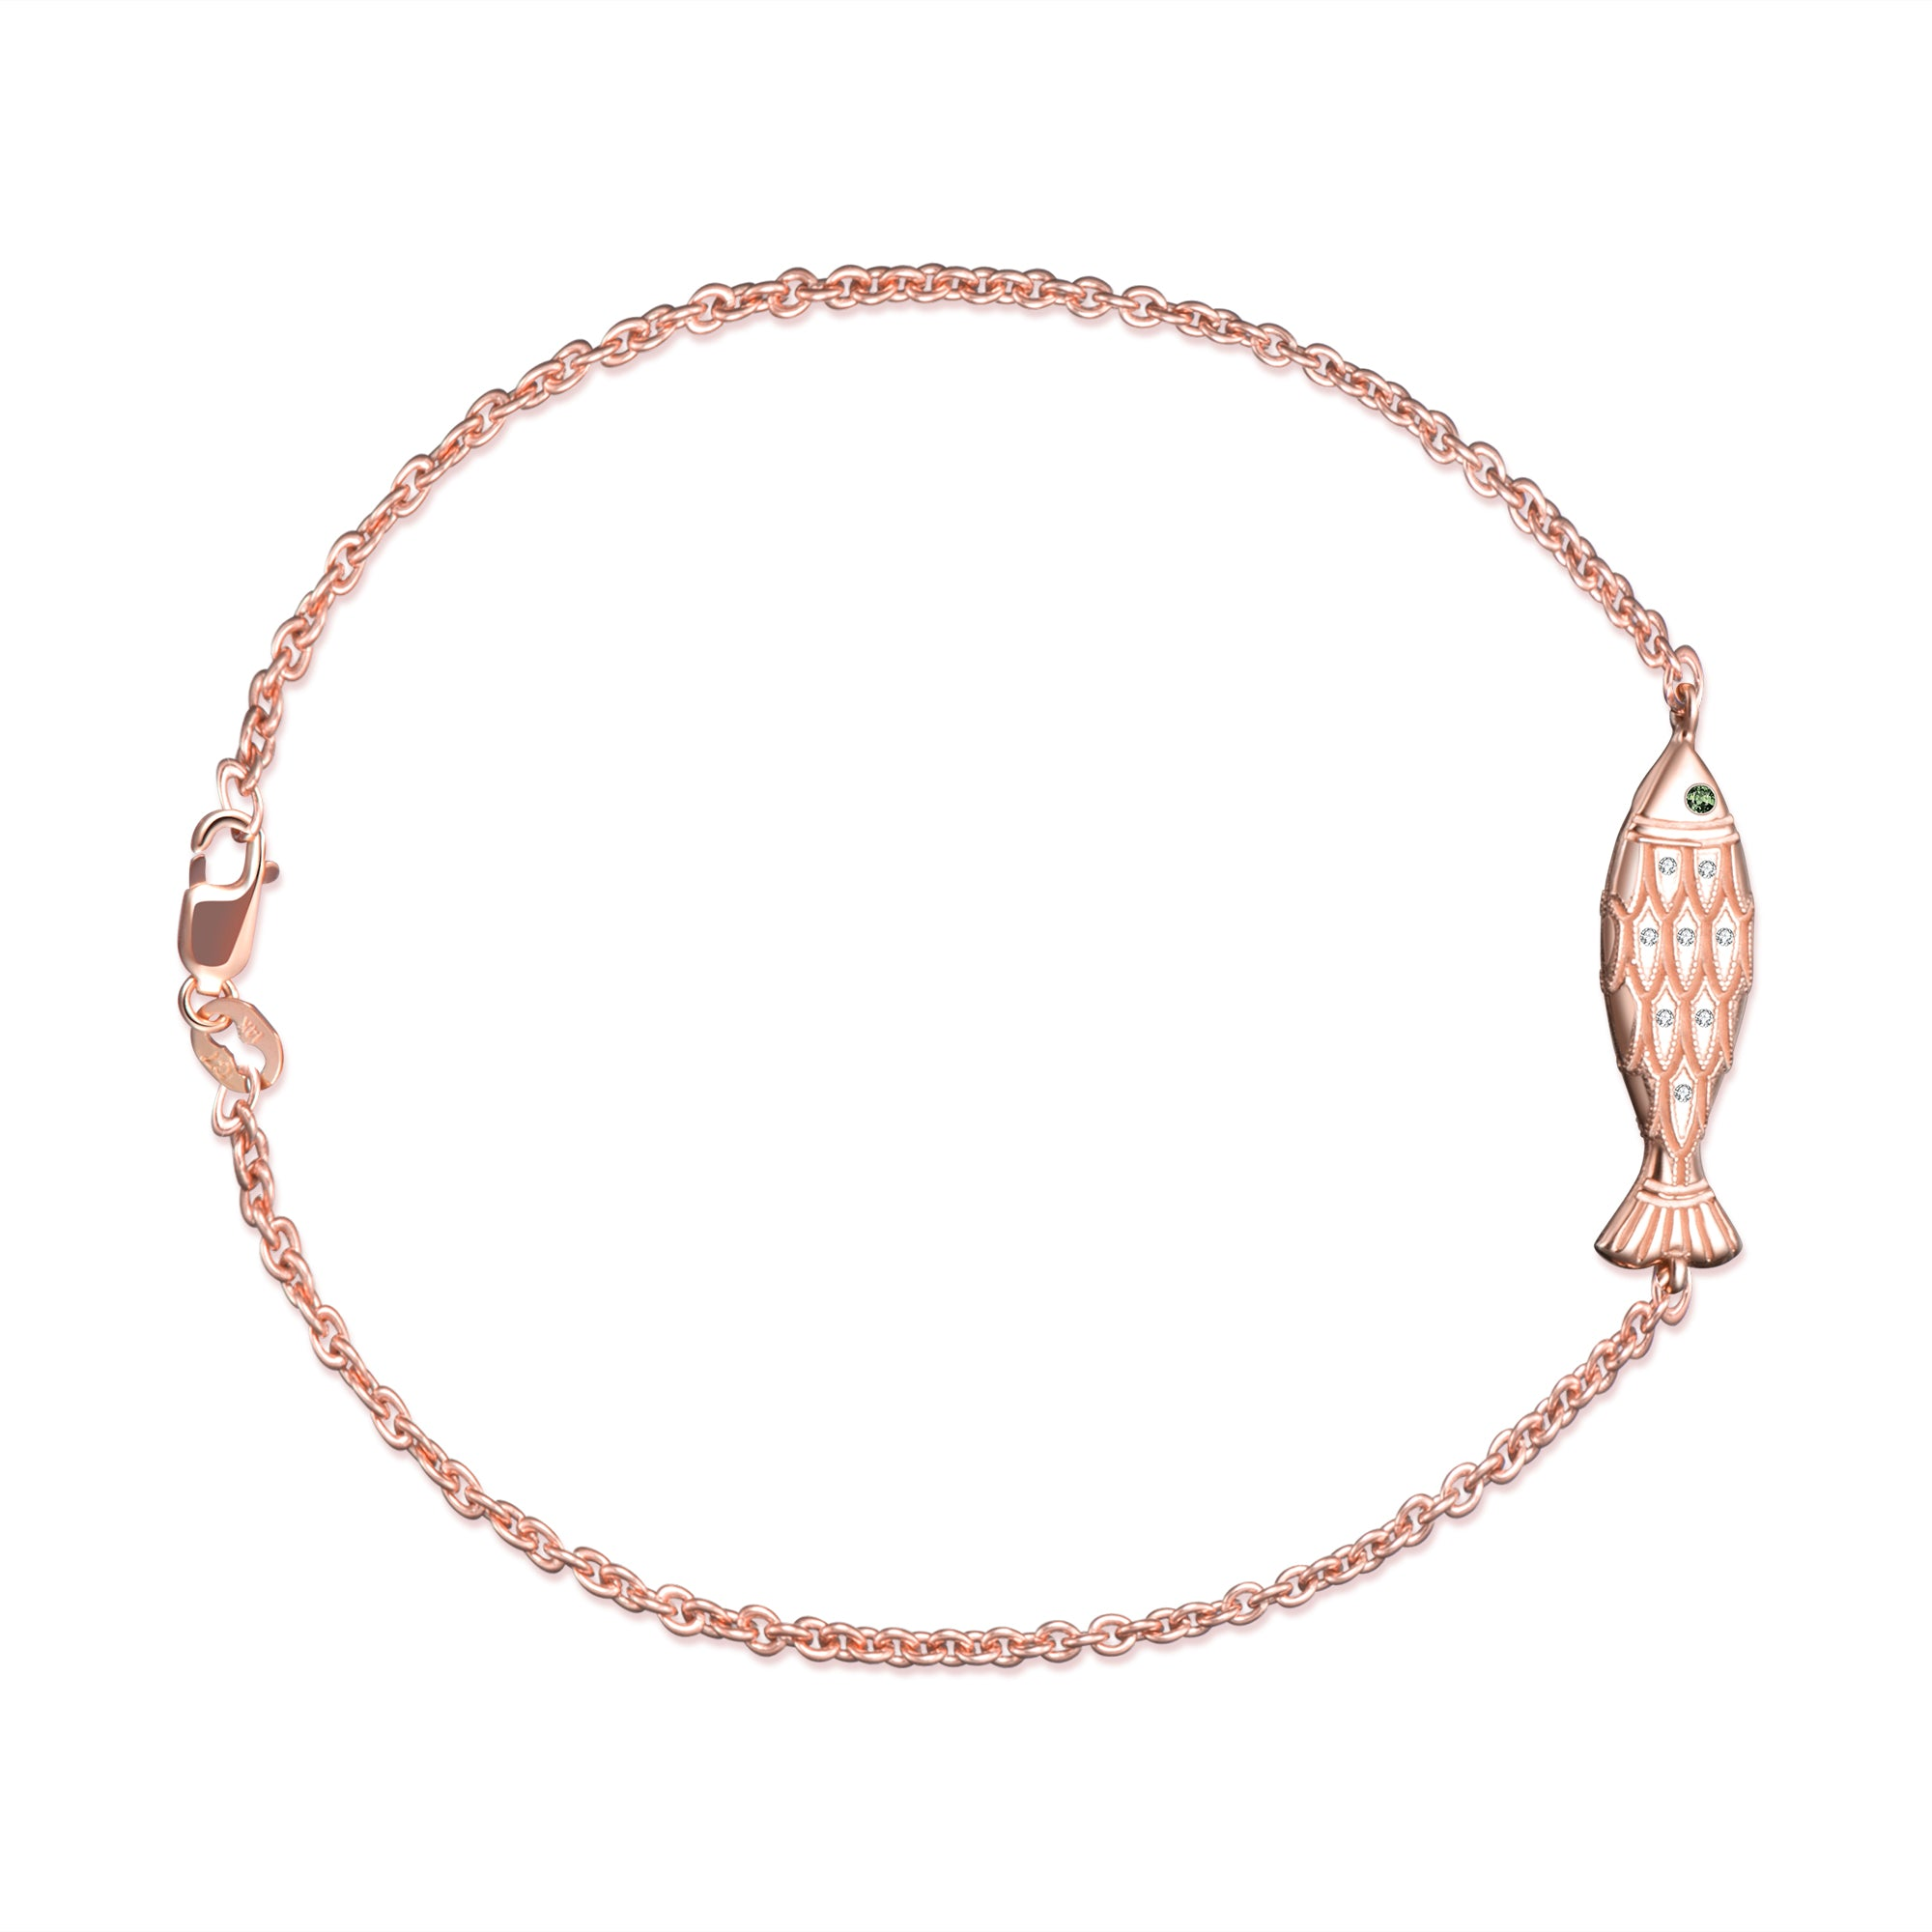 itm rose infinity with length zirconia bracelet zm adjustable anklet cubic k solid gold